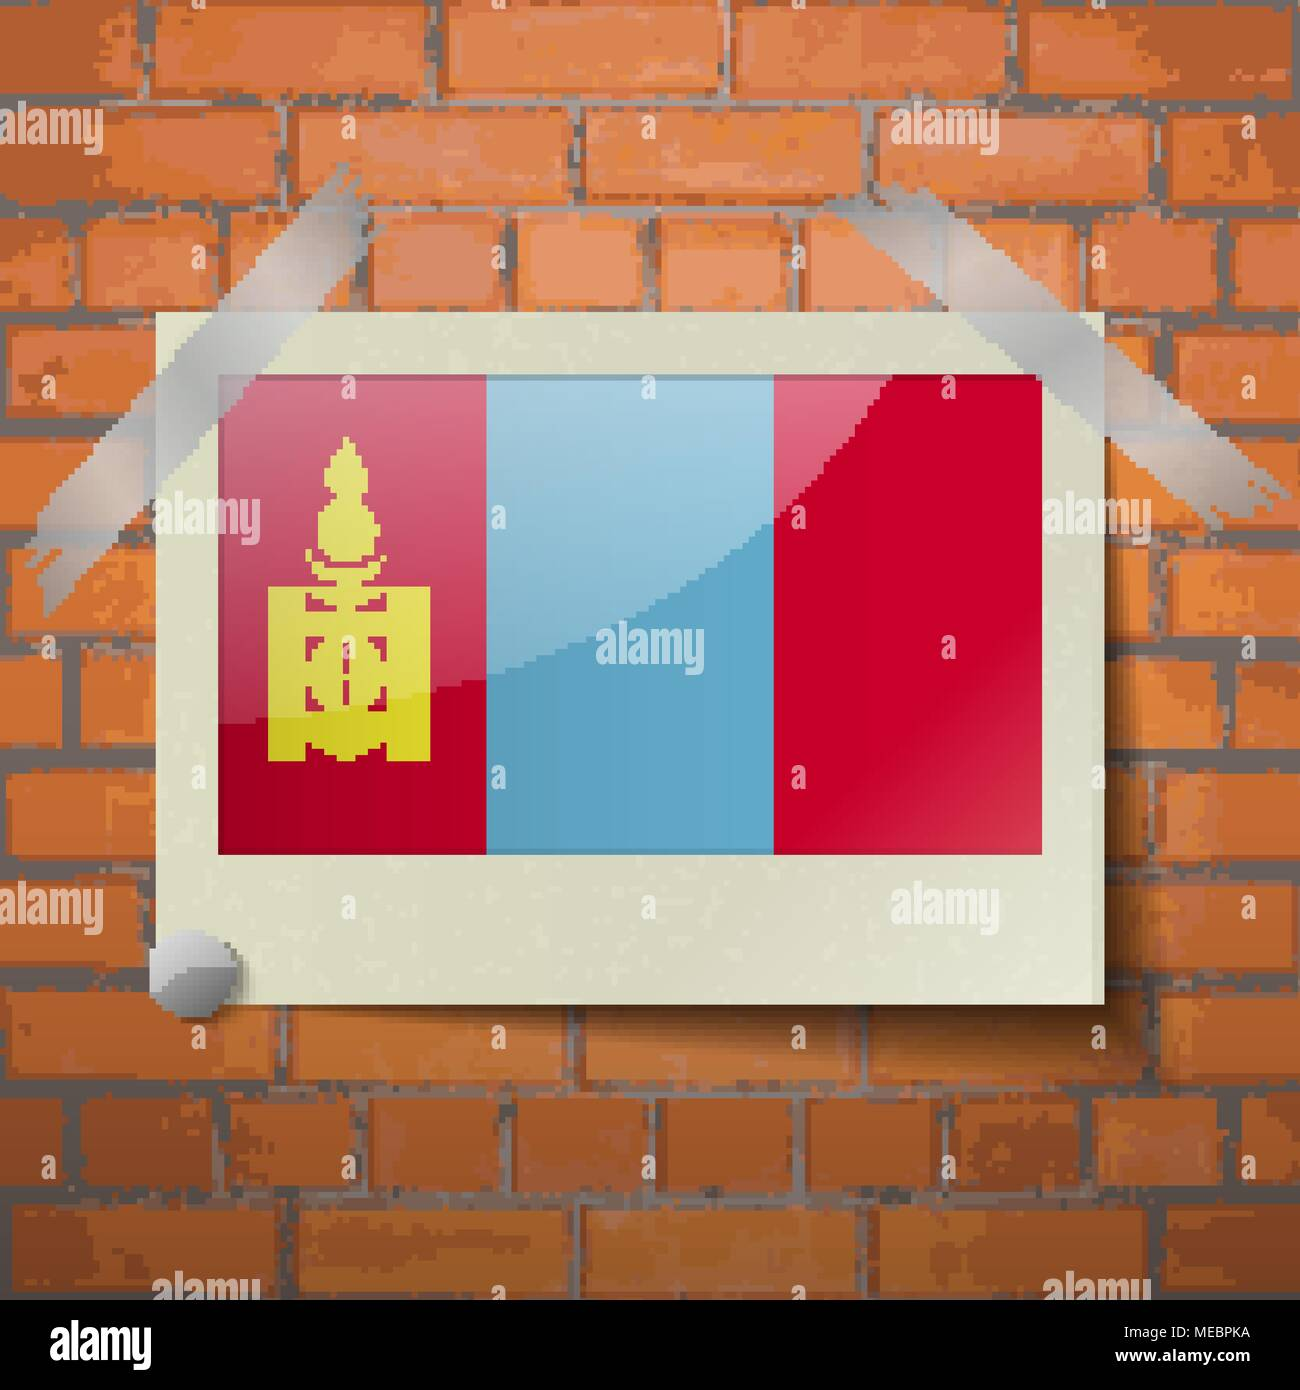 Flags of Mongolia scotch taped to a red brick wall. Vector - Stock Vector